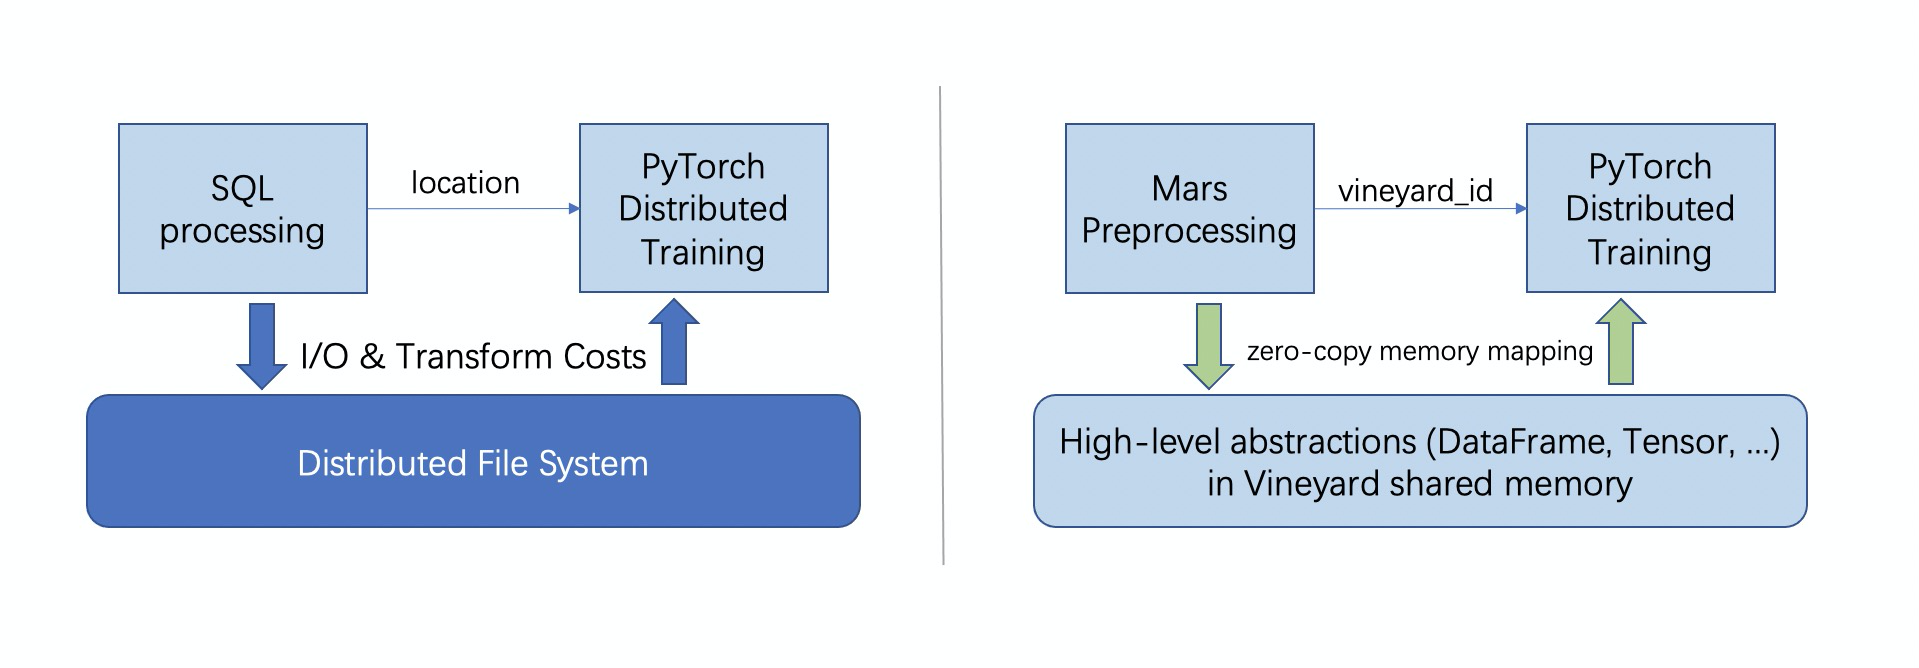 Comparing the workflow with and without vineyard